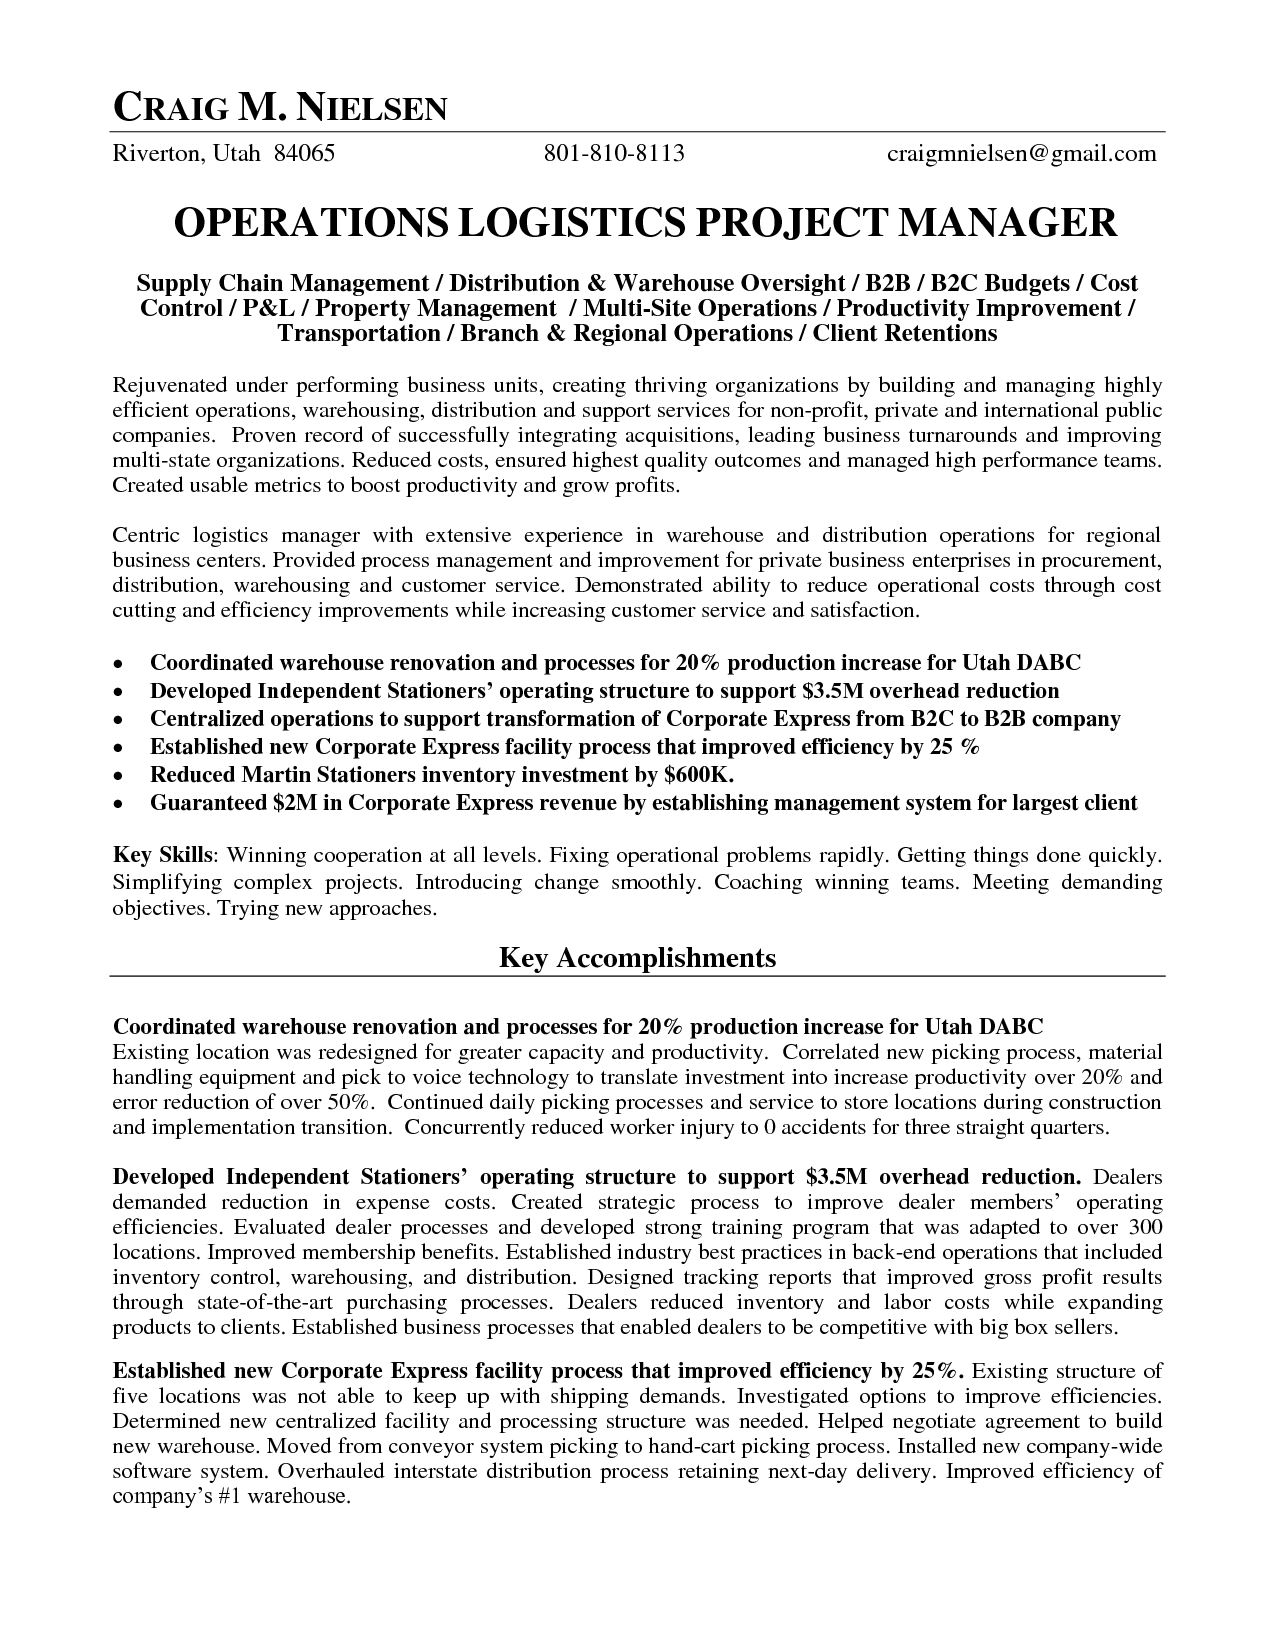 Logistics Operations Manager Resume | Operations Logistics Project Manager  In Salt Lake City UT Resume Craig  Inventory Manager Resume